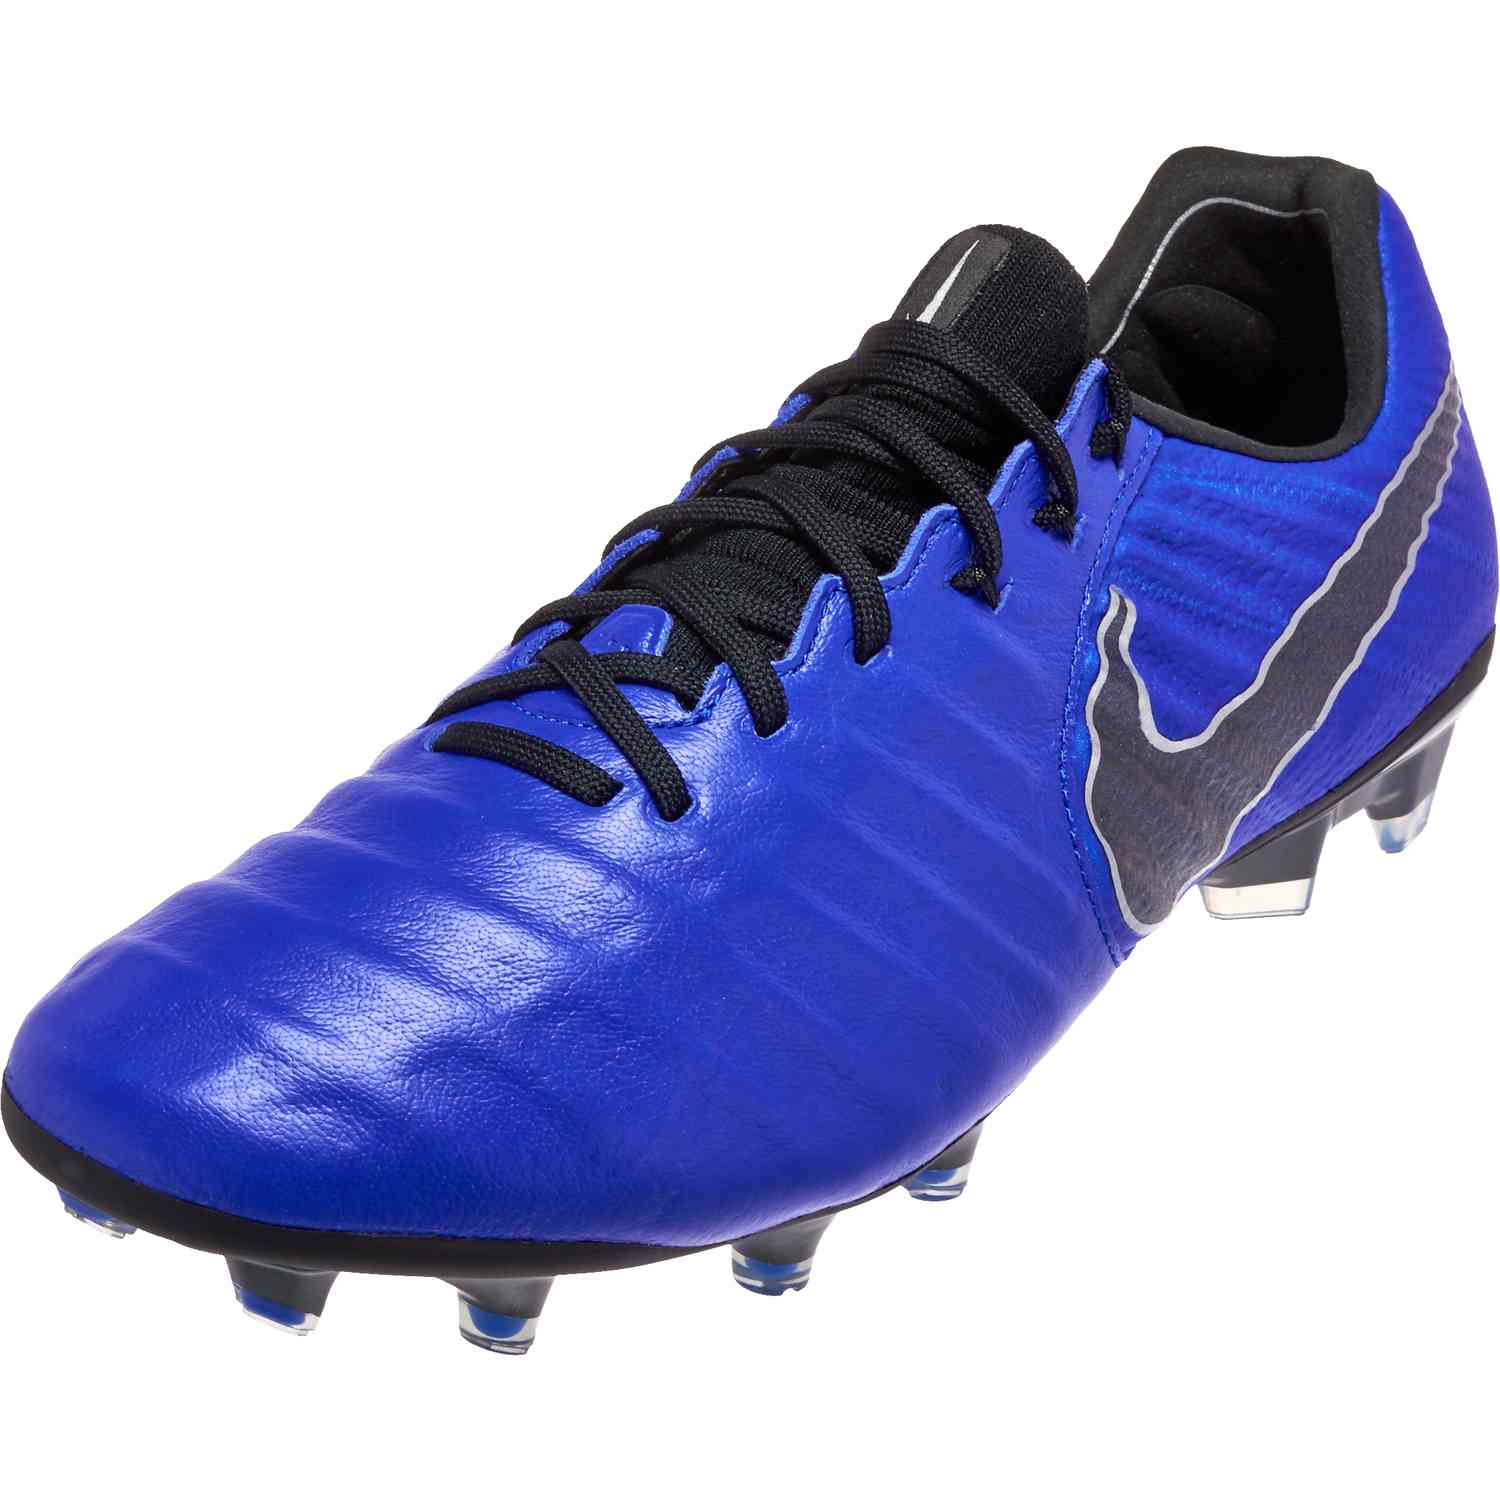 cheap for discount 48330 d59f5 Nike Tiempo Legend 7 Elite FG - Racer Blue/Black/Metallic ...